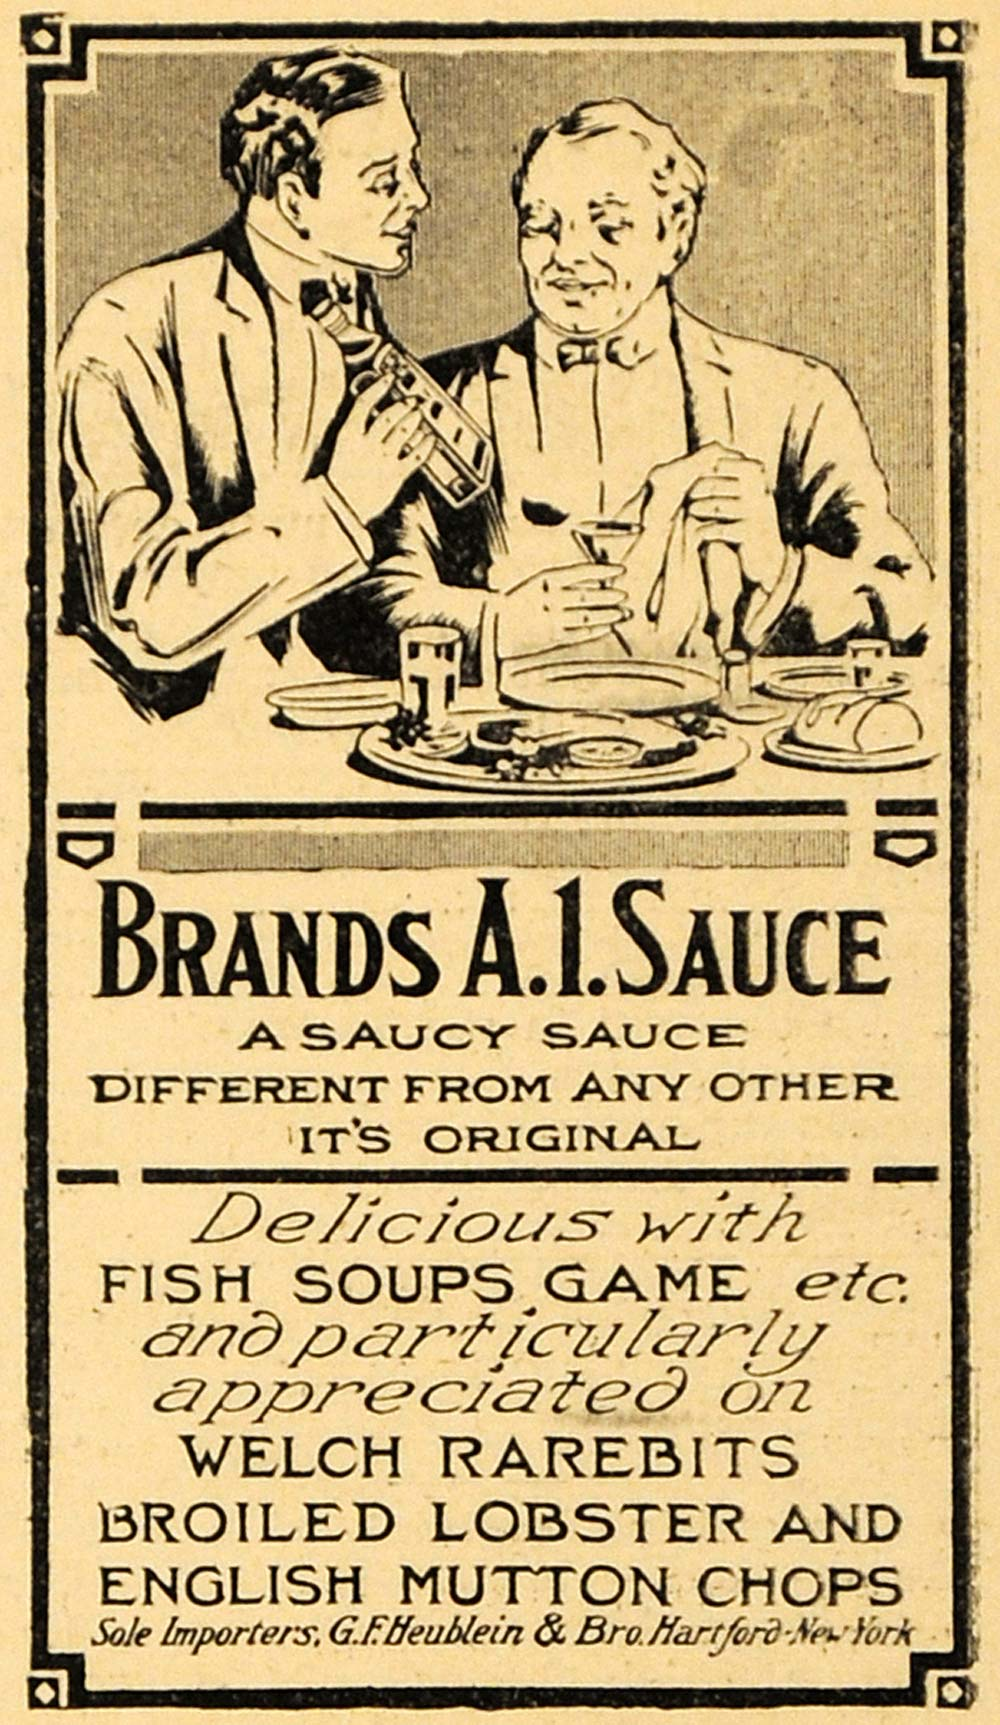 1912 Ad G. F. Heublein Brand's A. 1. Food Meat Sauce - ORIGINAL ADVERTISING THR1